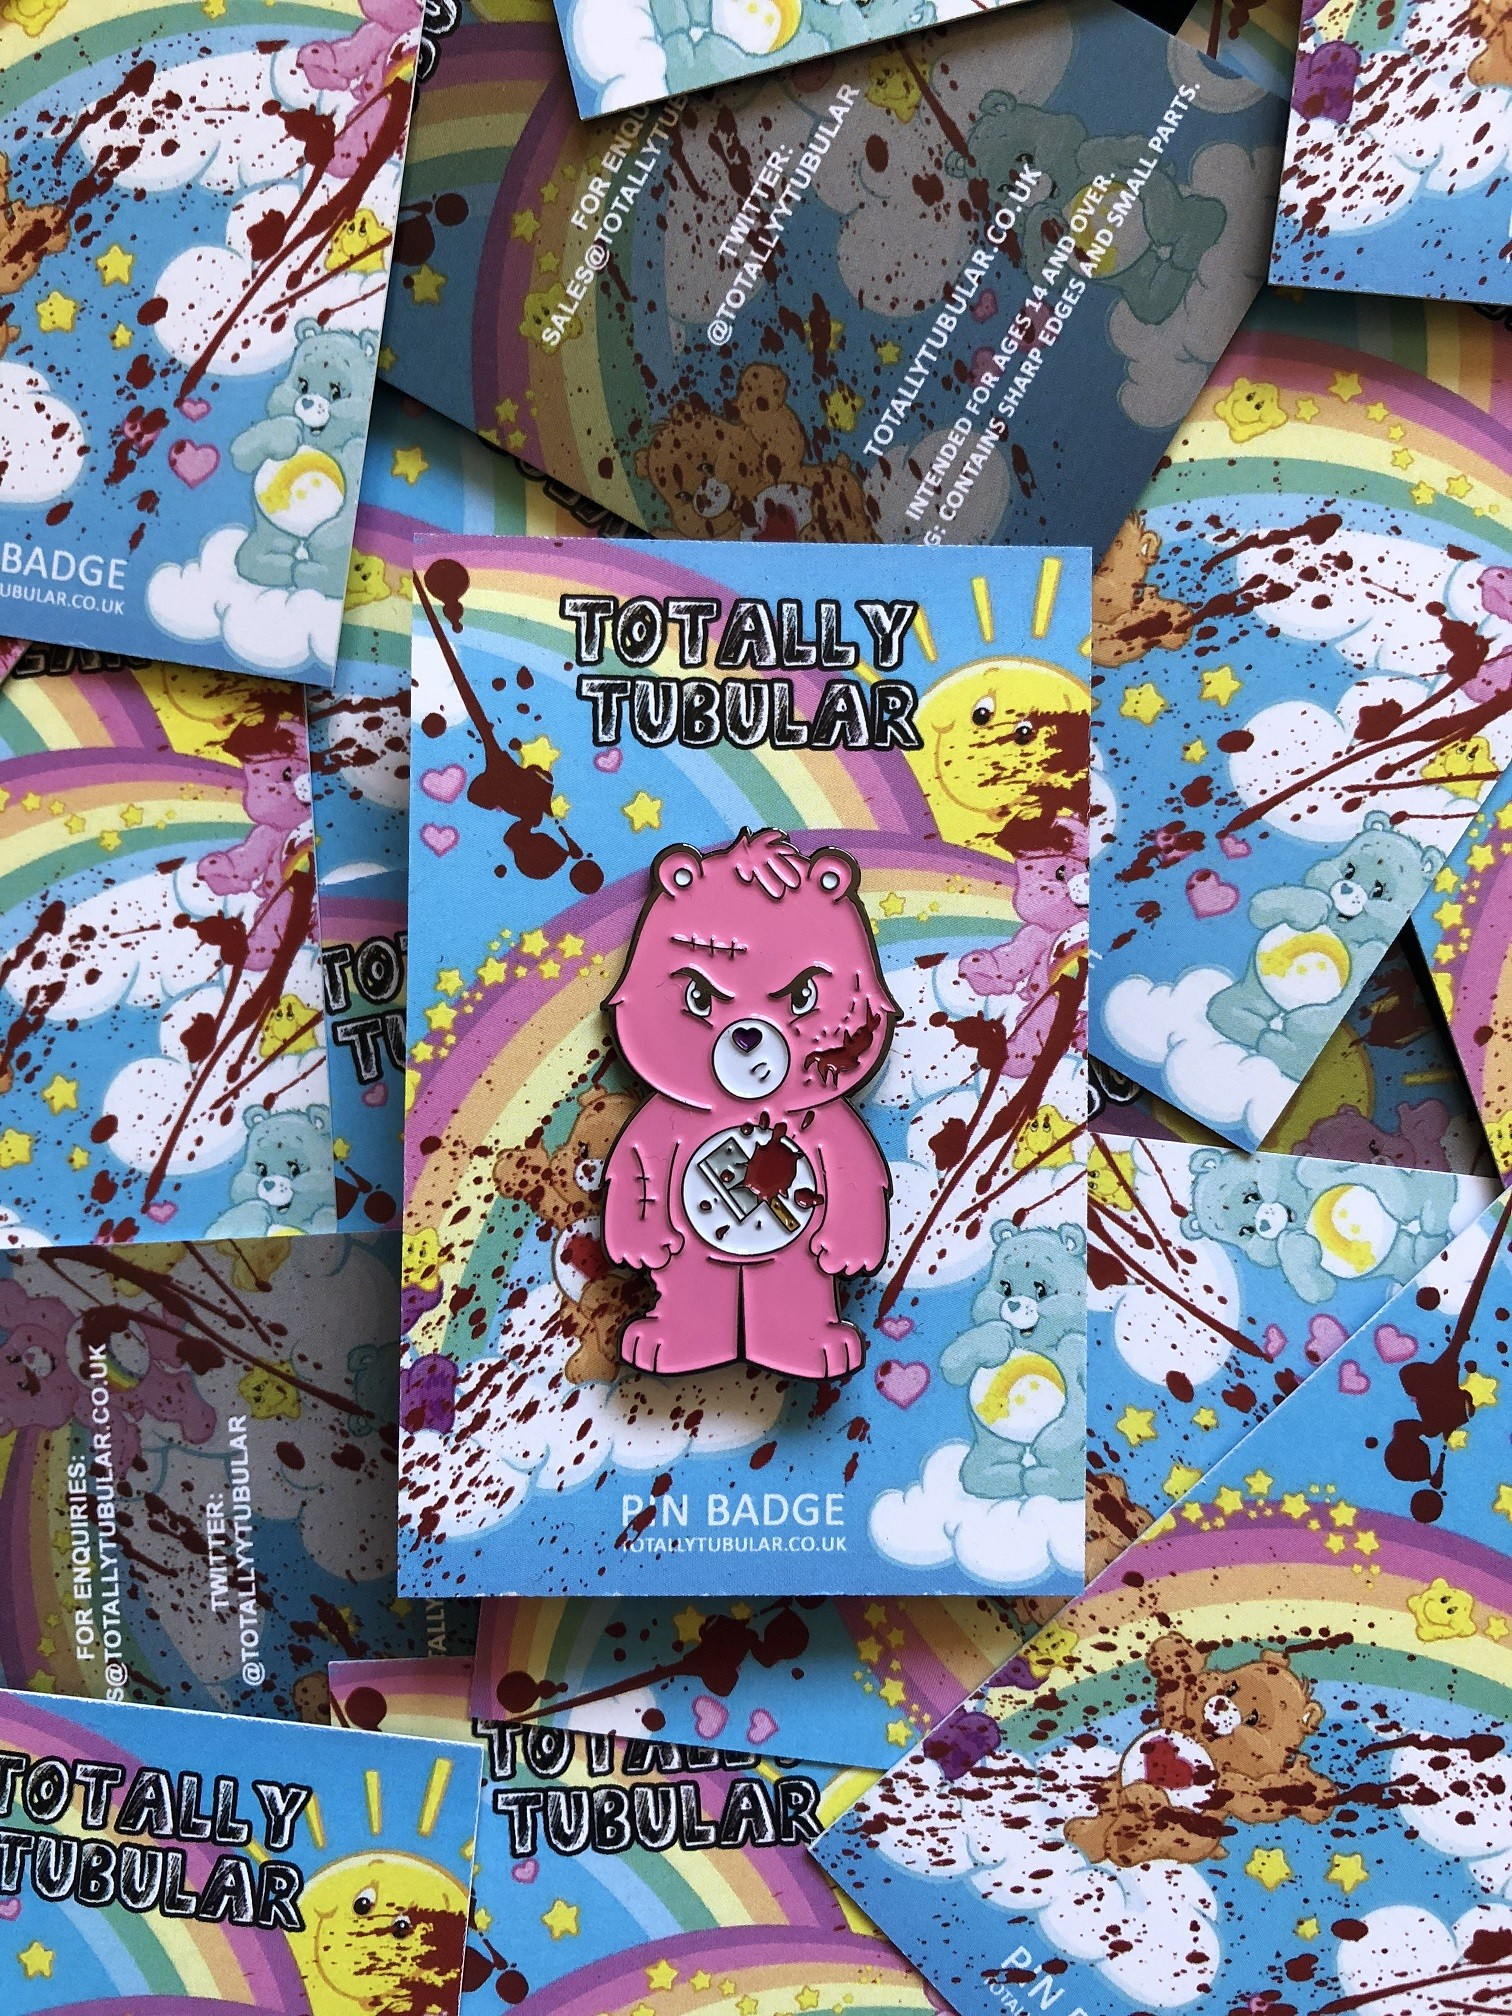 INTENSIVE CARE BEAR ENAMEL PIN BADGE BY TOTALLY TUBULAR